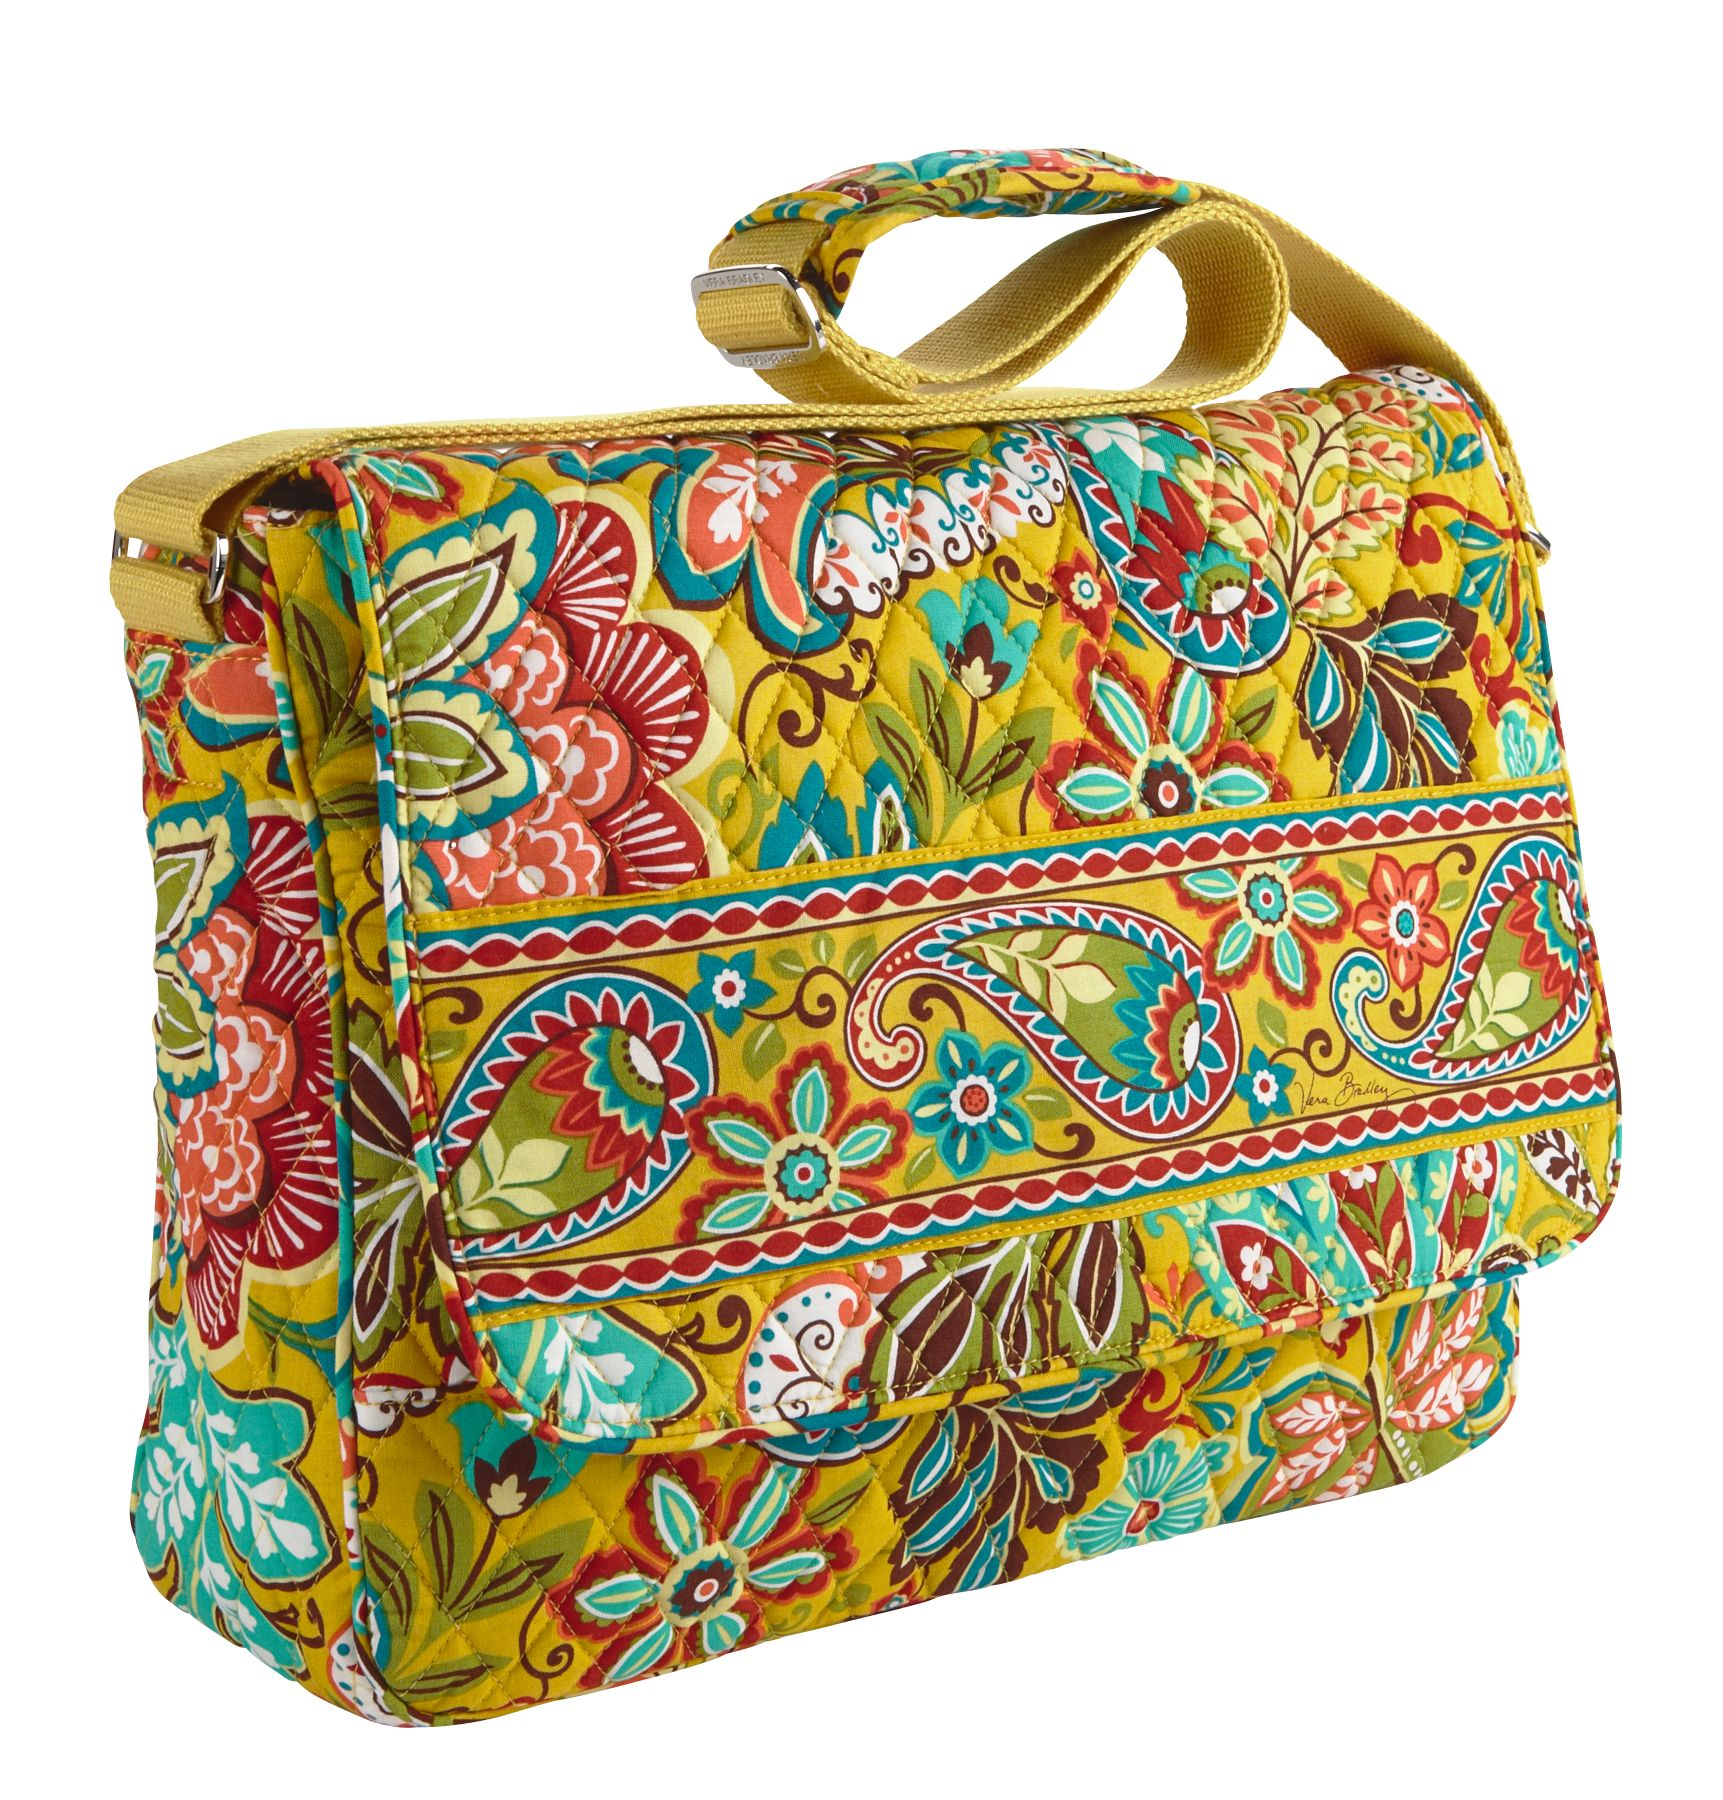 Vera Bradley Extra Off Sale Deals